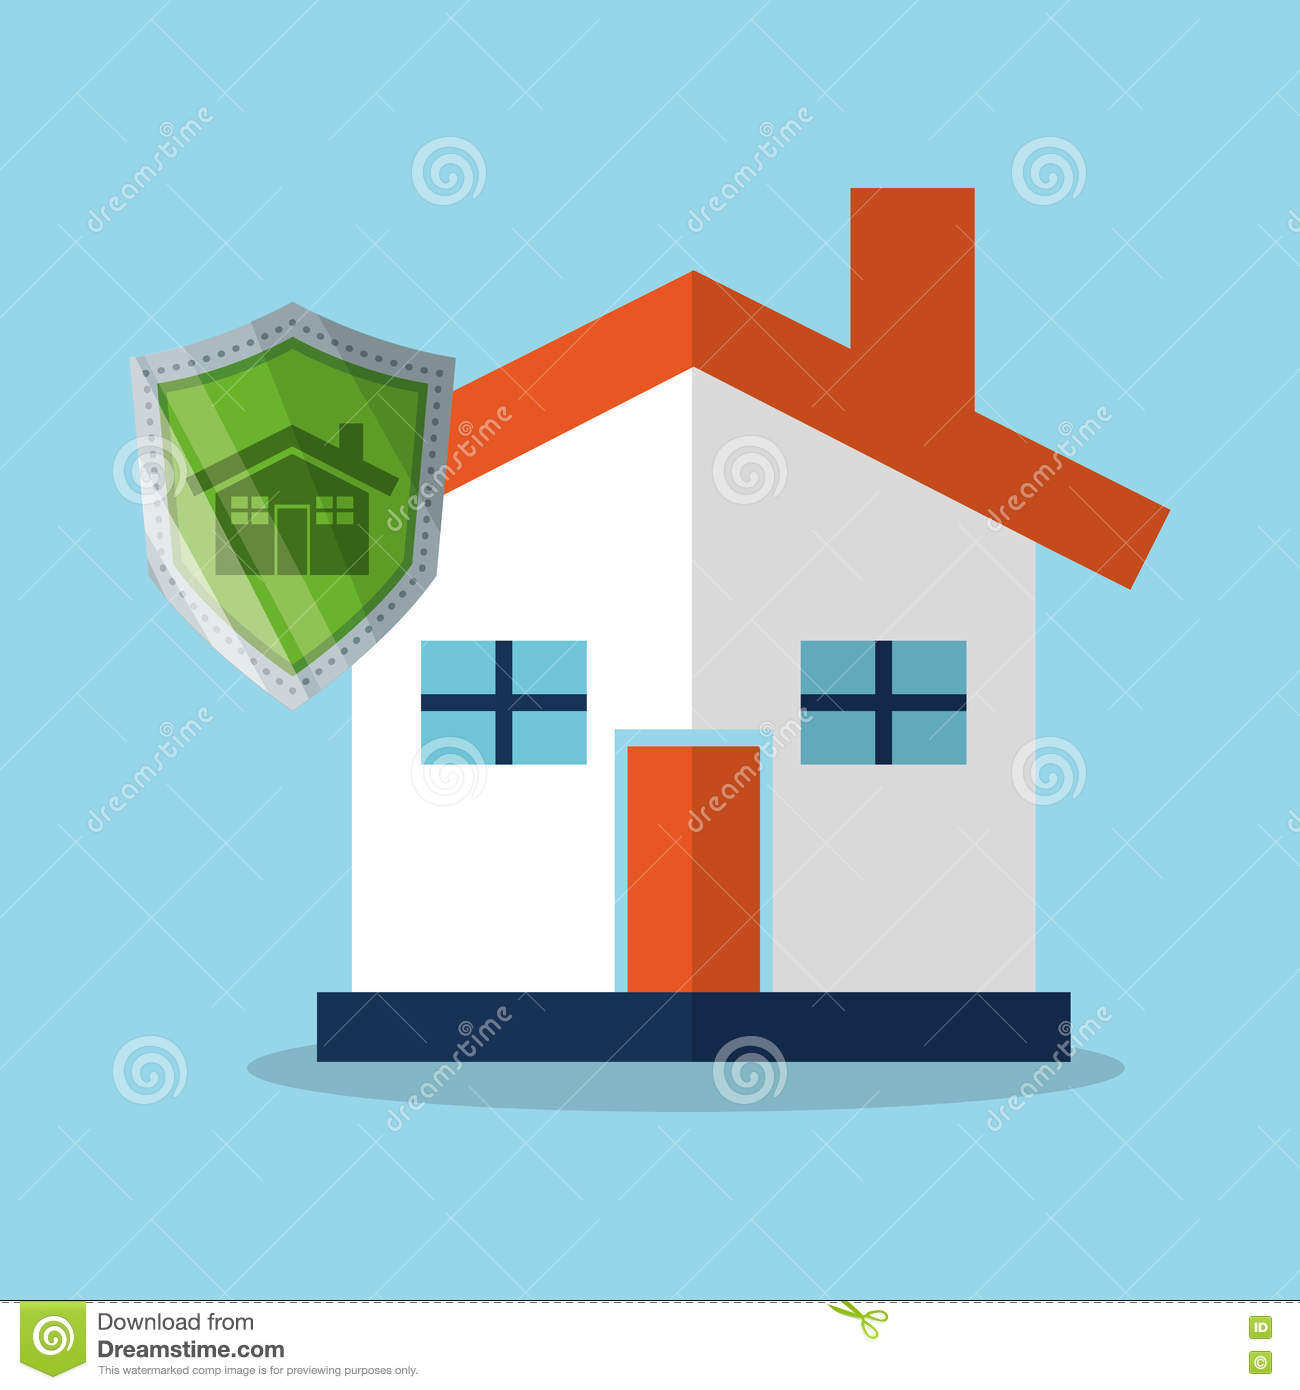 Download House And Security System Design Stock Illustration   Illustration  Of Safe, Failure: 79859605